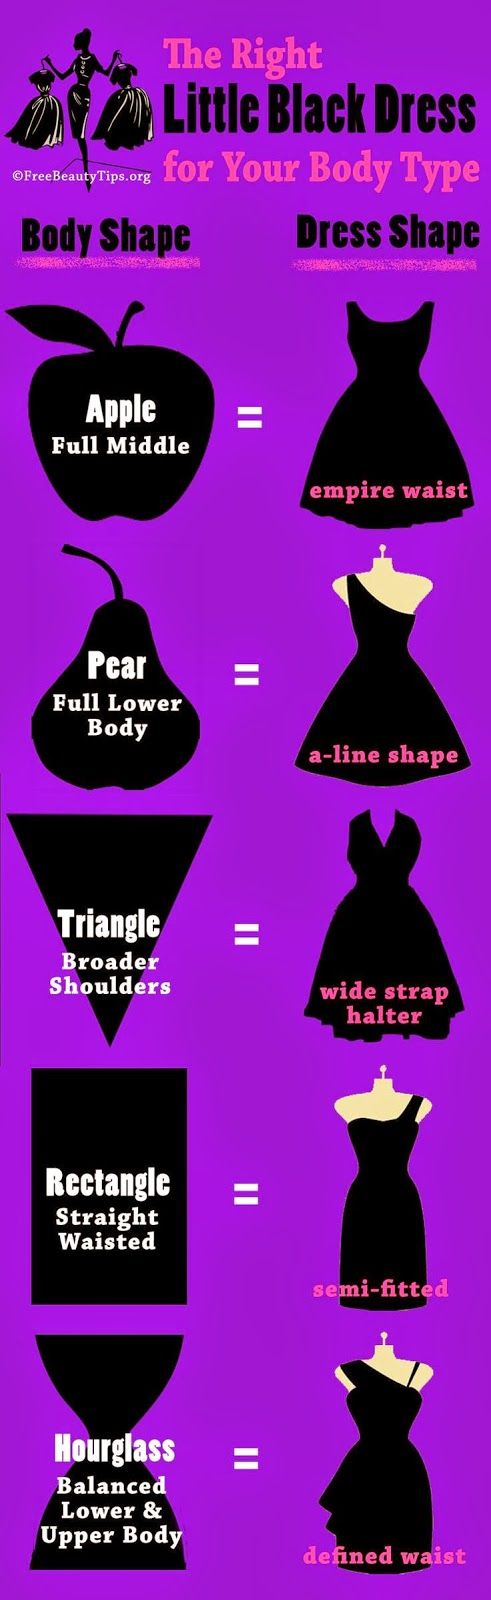 If you have budget for only one LBD or are buying your first one, use this as a guide and avoid a costly mistake.